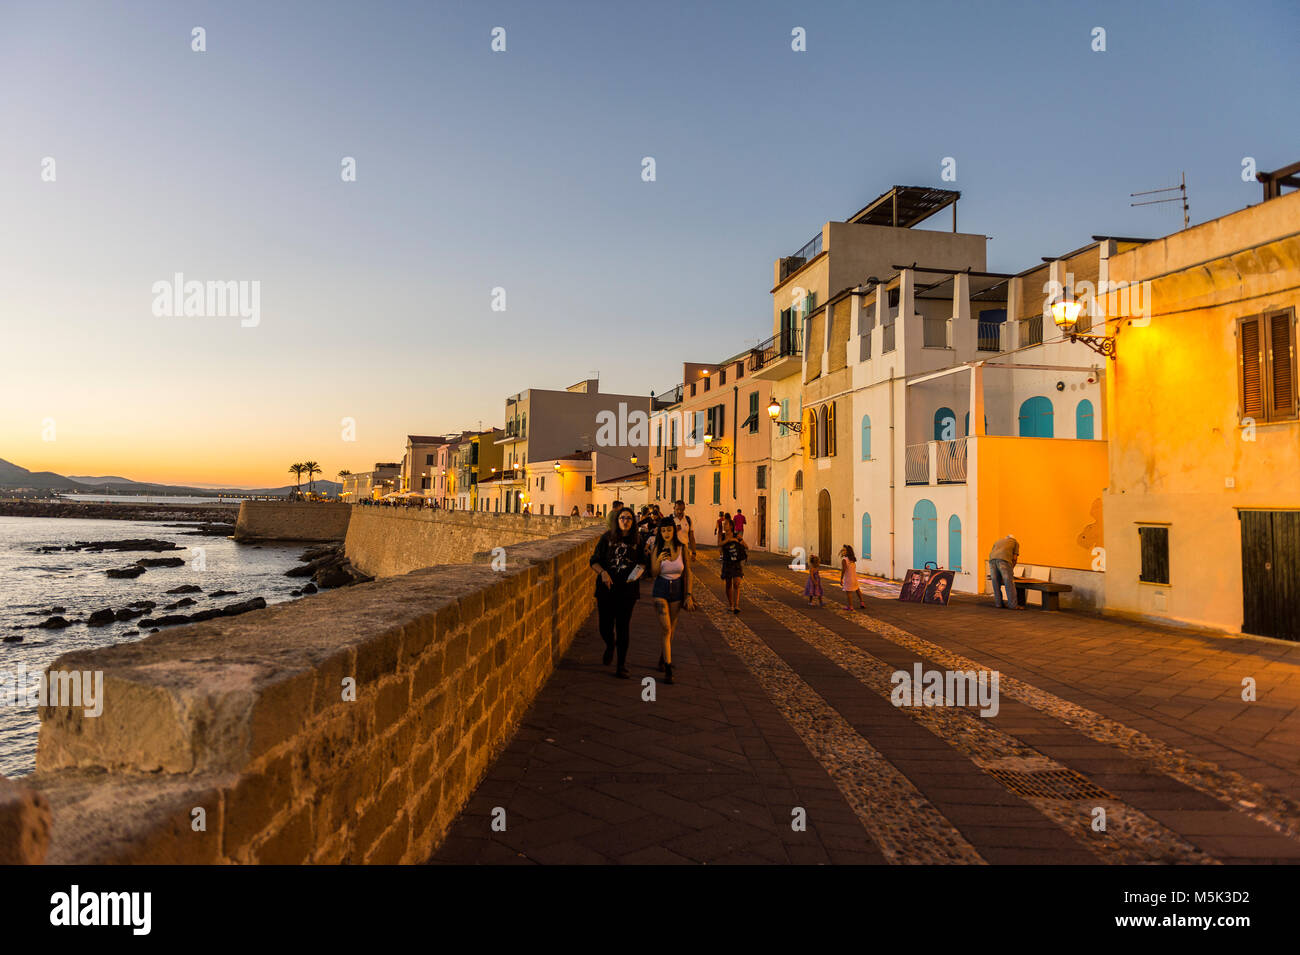 Waterfront in the coastal town of Alghero after sunset, Sardinia, Italy - Stock Image